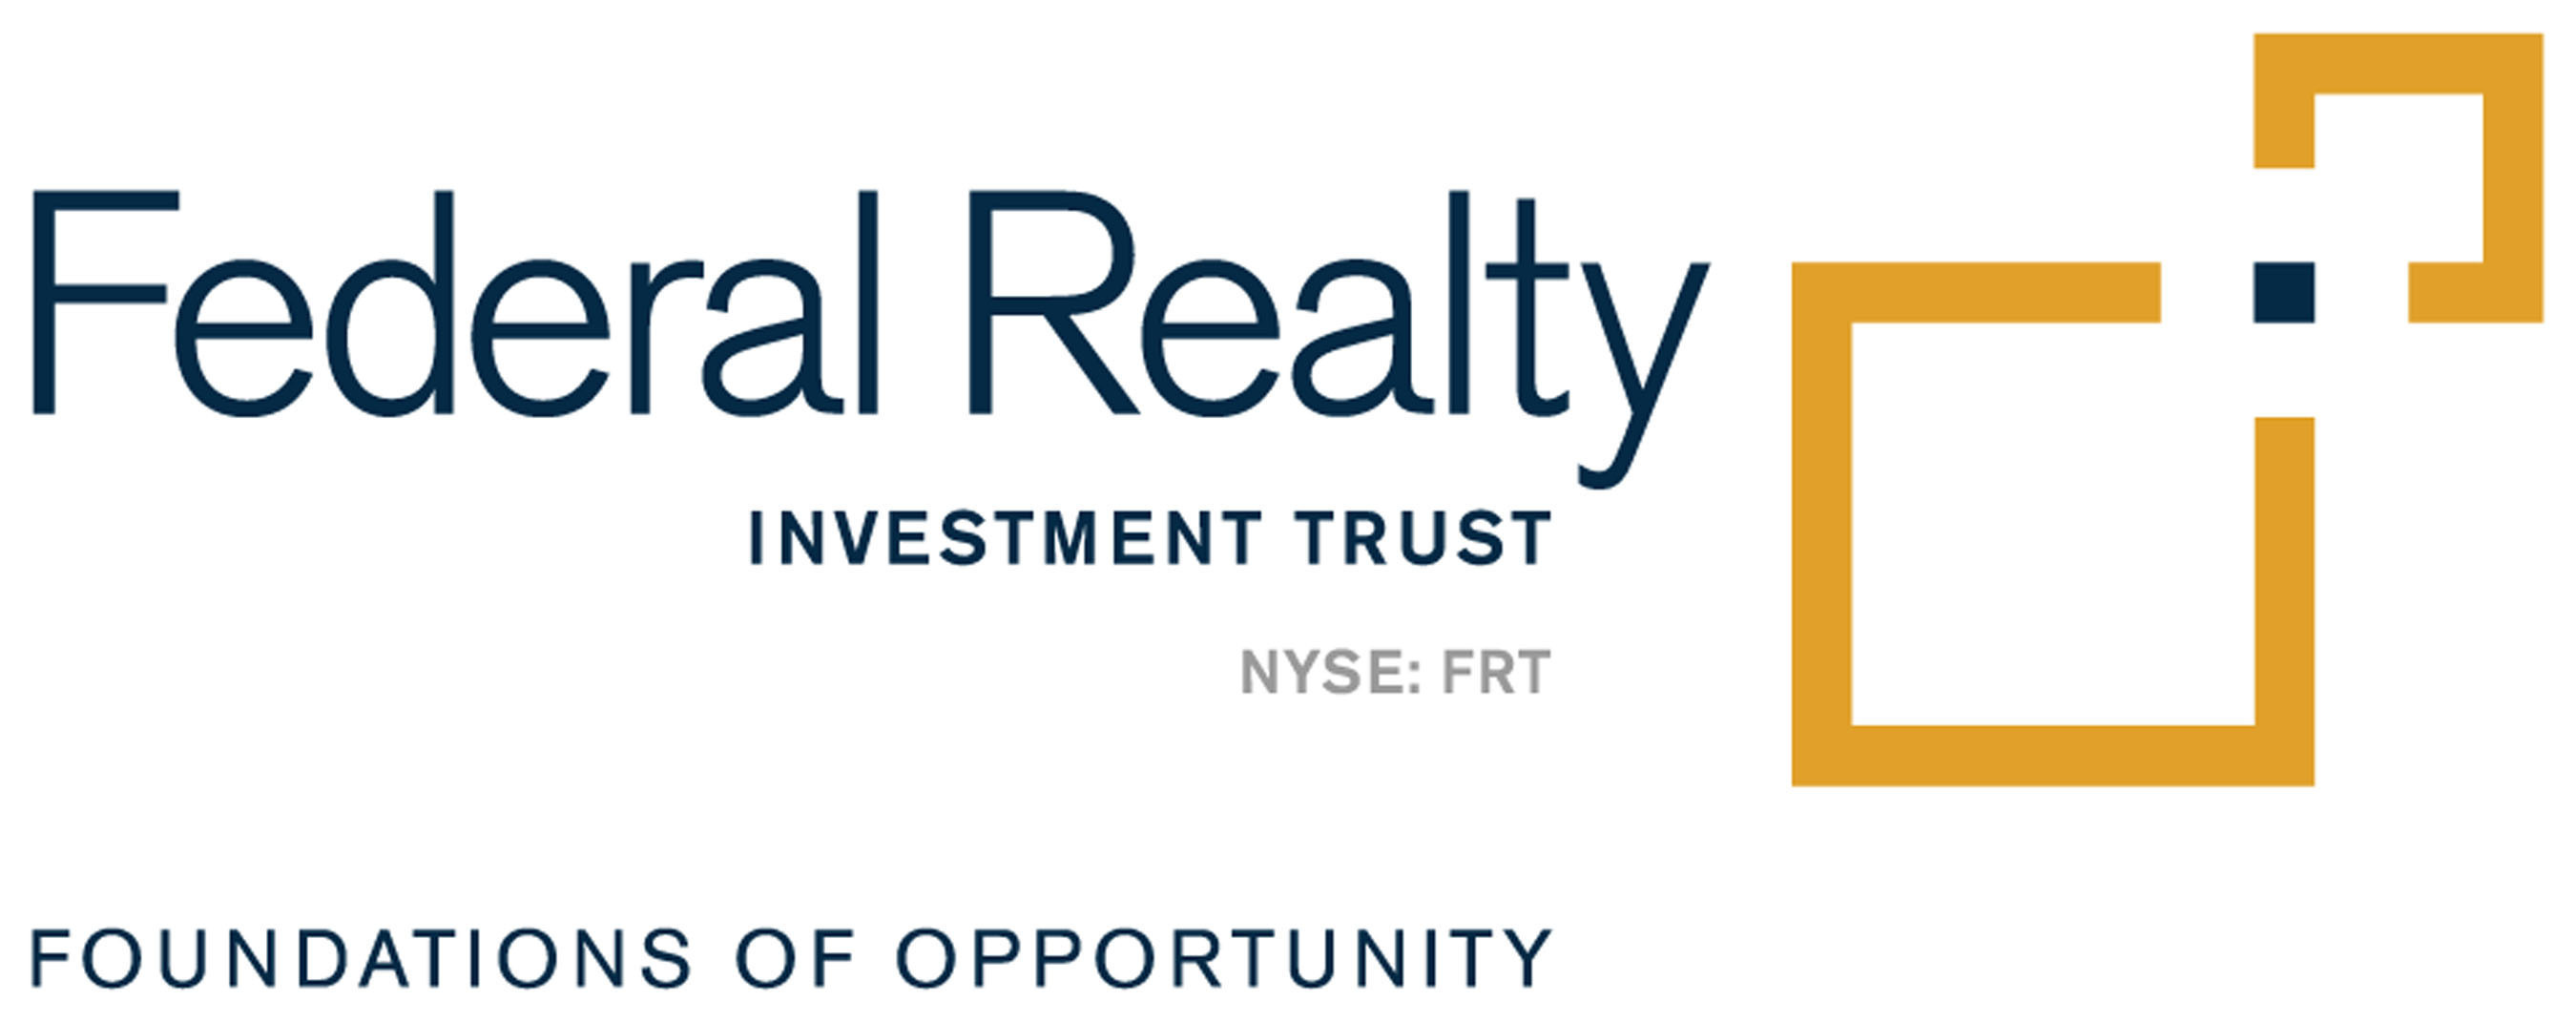 Federal Realty Investment Trust is an equity real estate investment trust specializing in the ownership, ...